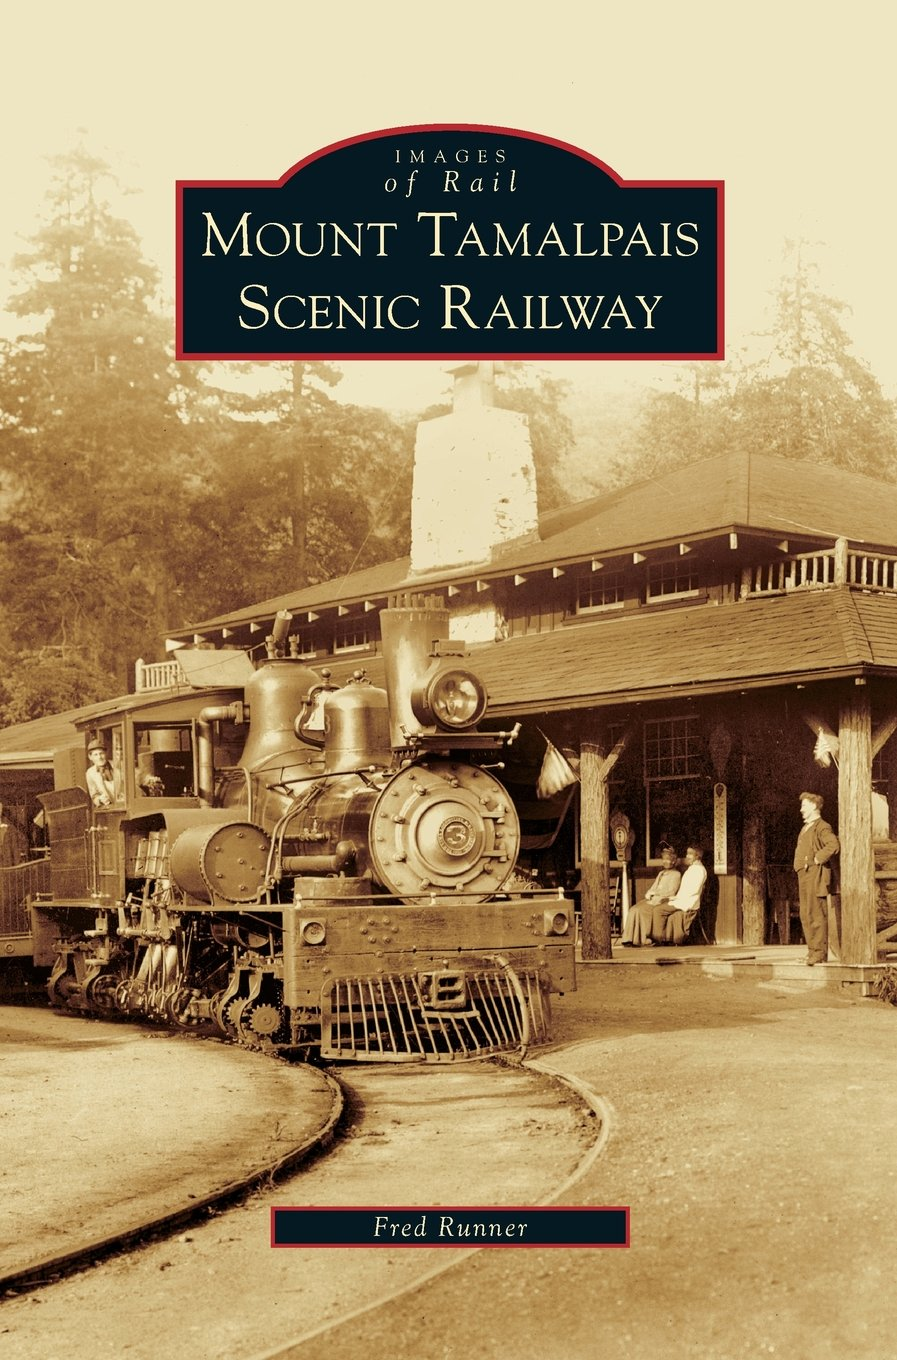 Download Mount Tamalpais Scenic Railway PDF ePub book